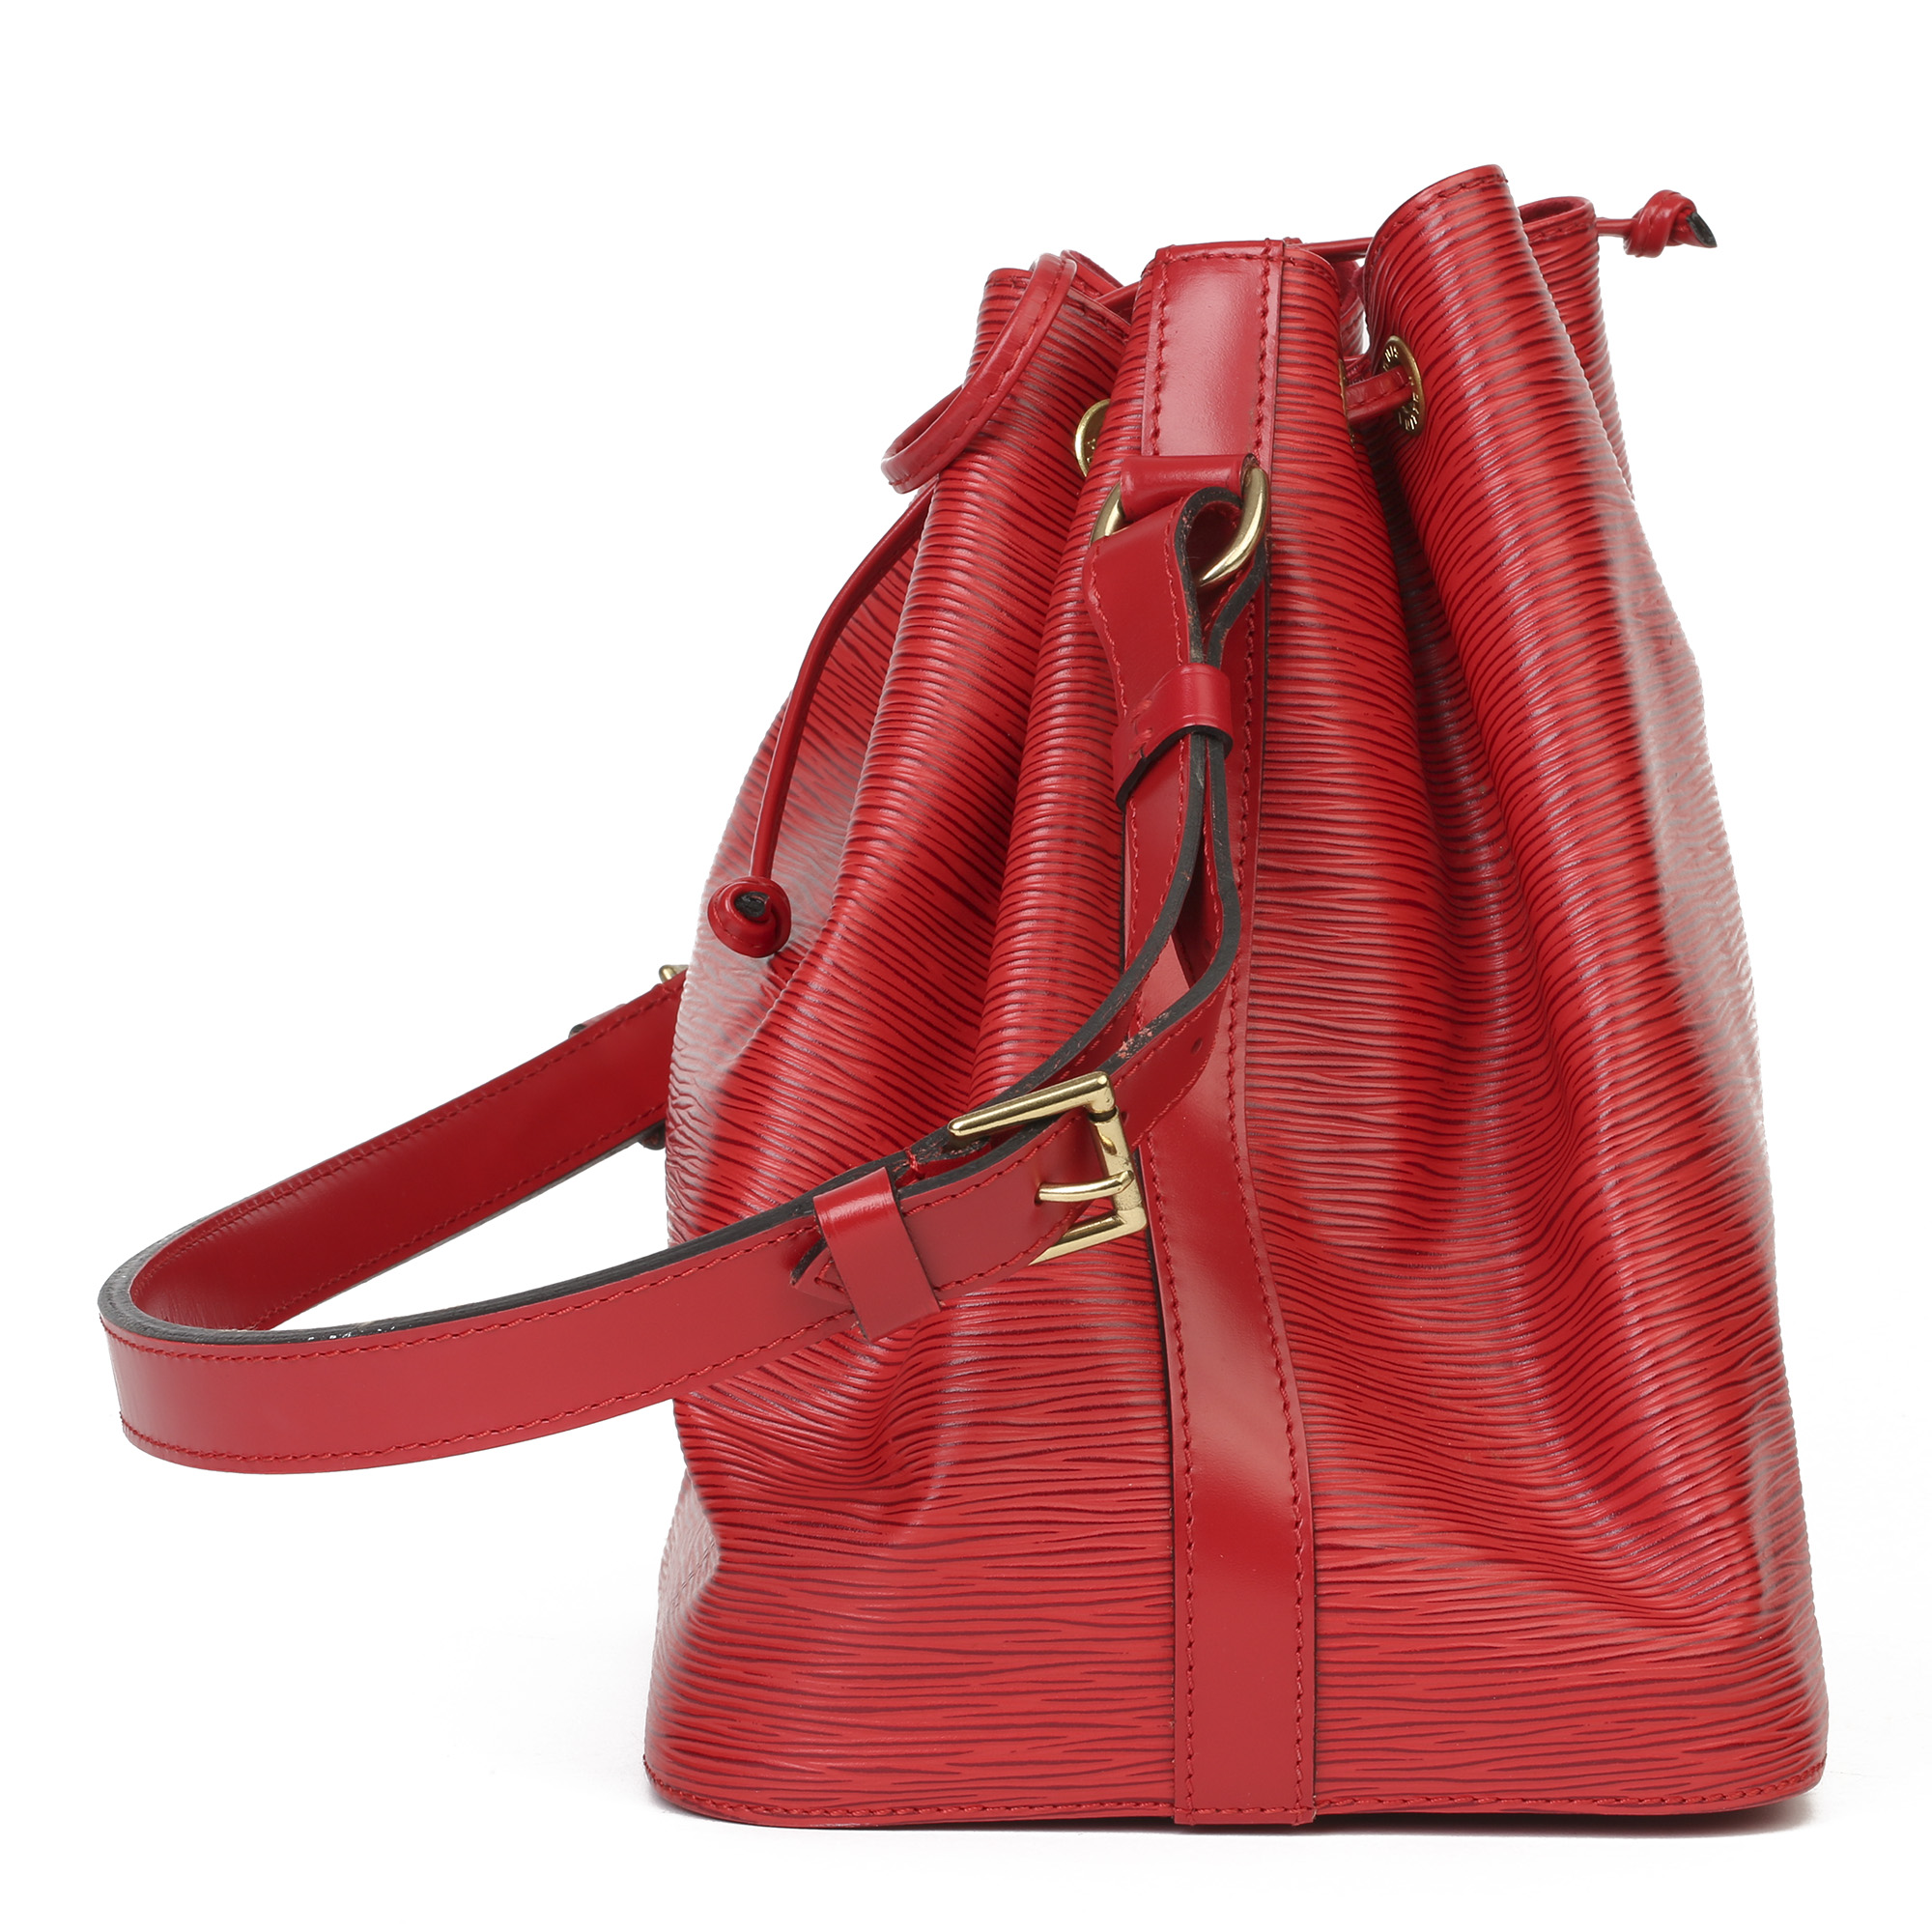 Louis Vuitton Red Epi Leather Vintage Petit NoŽ - Image 10 of 11